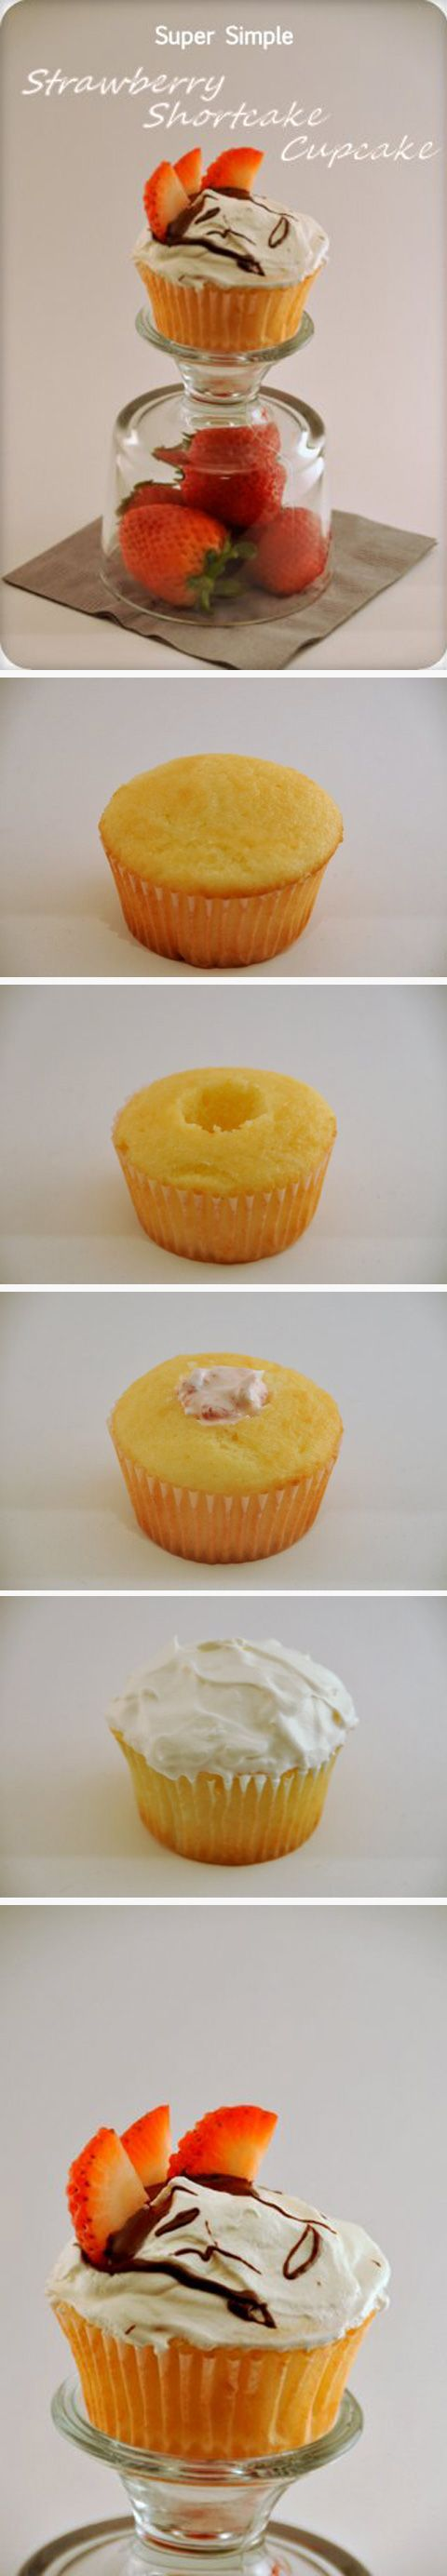 strawberry shortcake cupcake Recipe ~ Cool Whip, Strawberries all stuffed into a cupcake... Delicious!